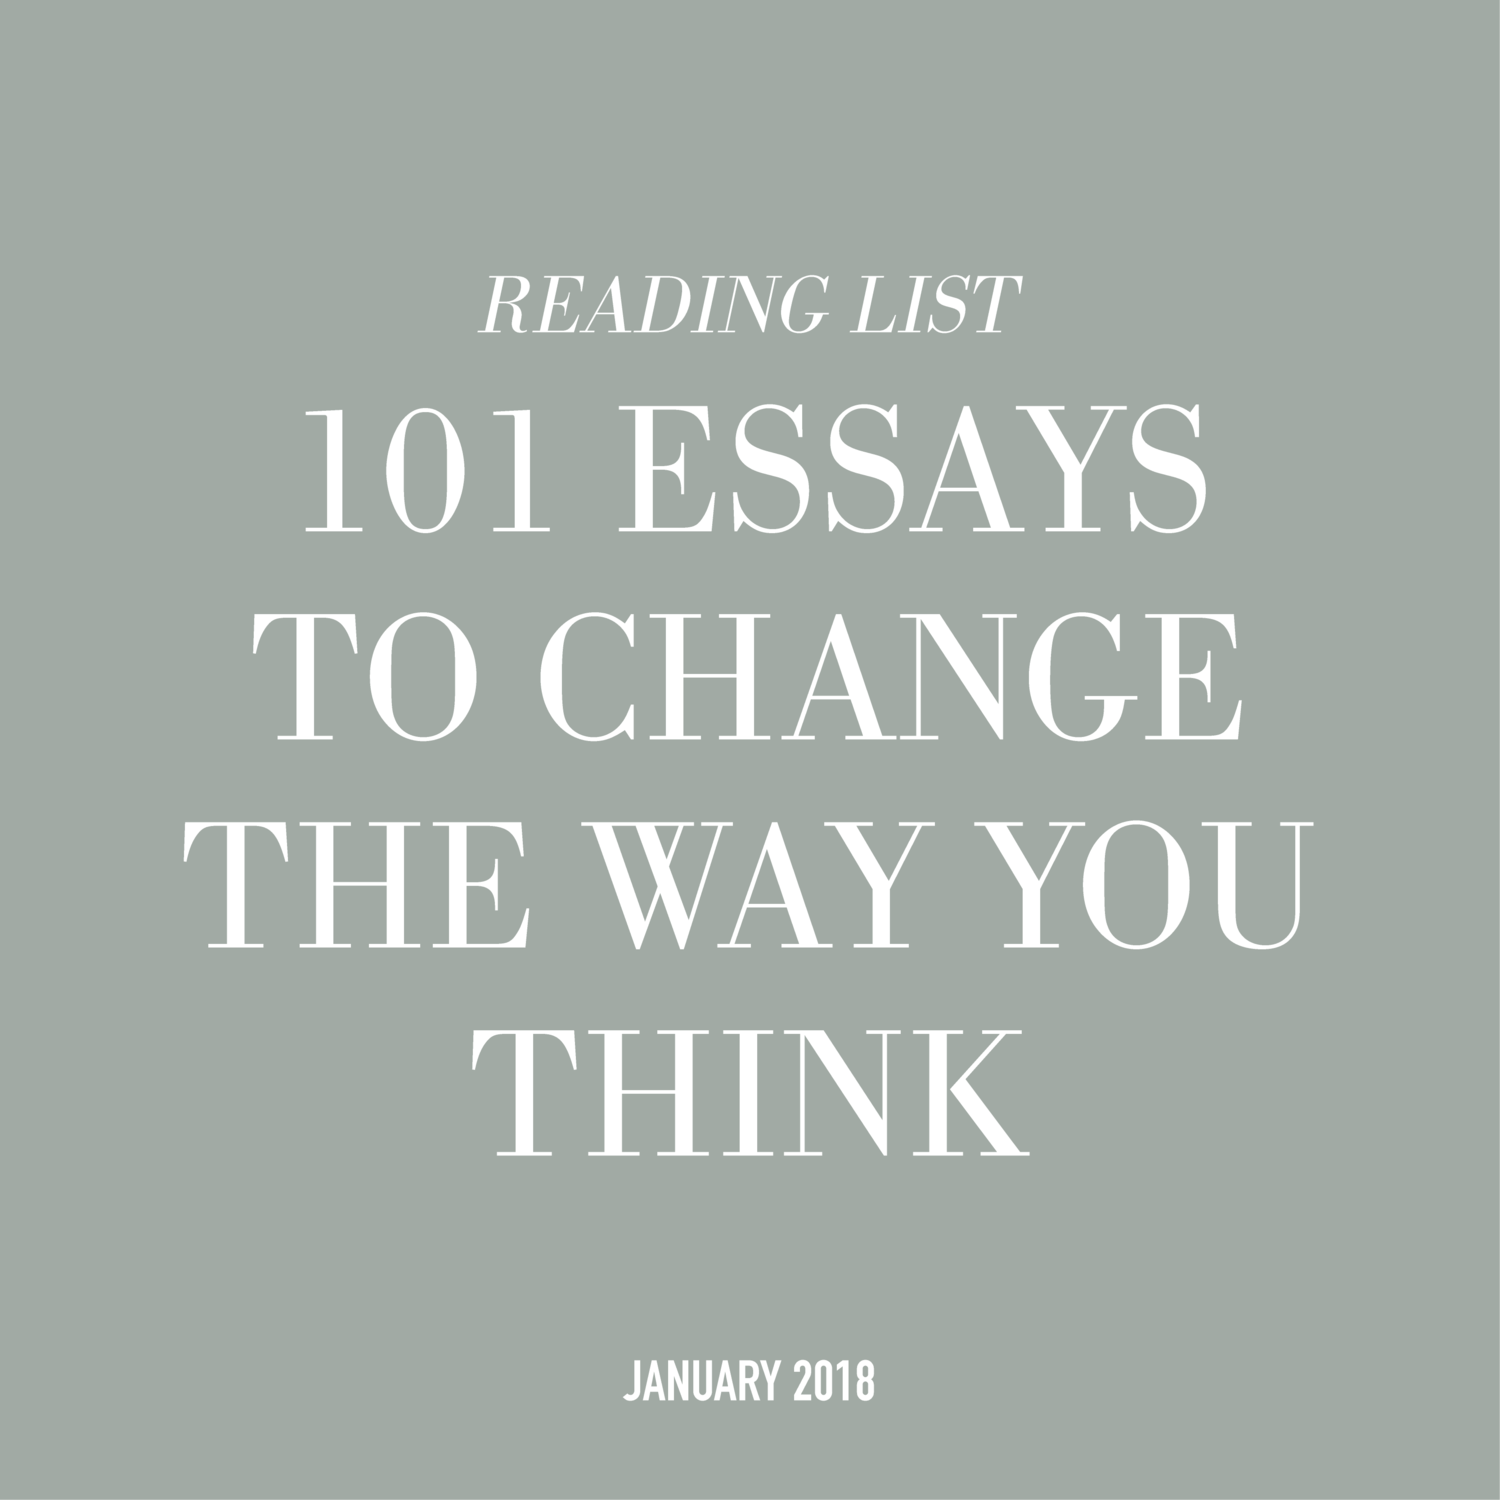 014 Essays That Will Change The Way You Think Essay Example 101essays Unusual 101 Book Depository Barnes And Noble Review Full